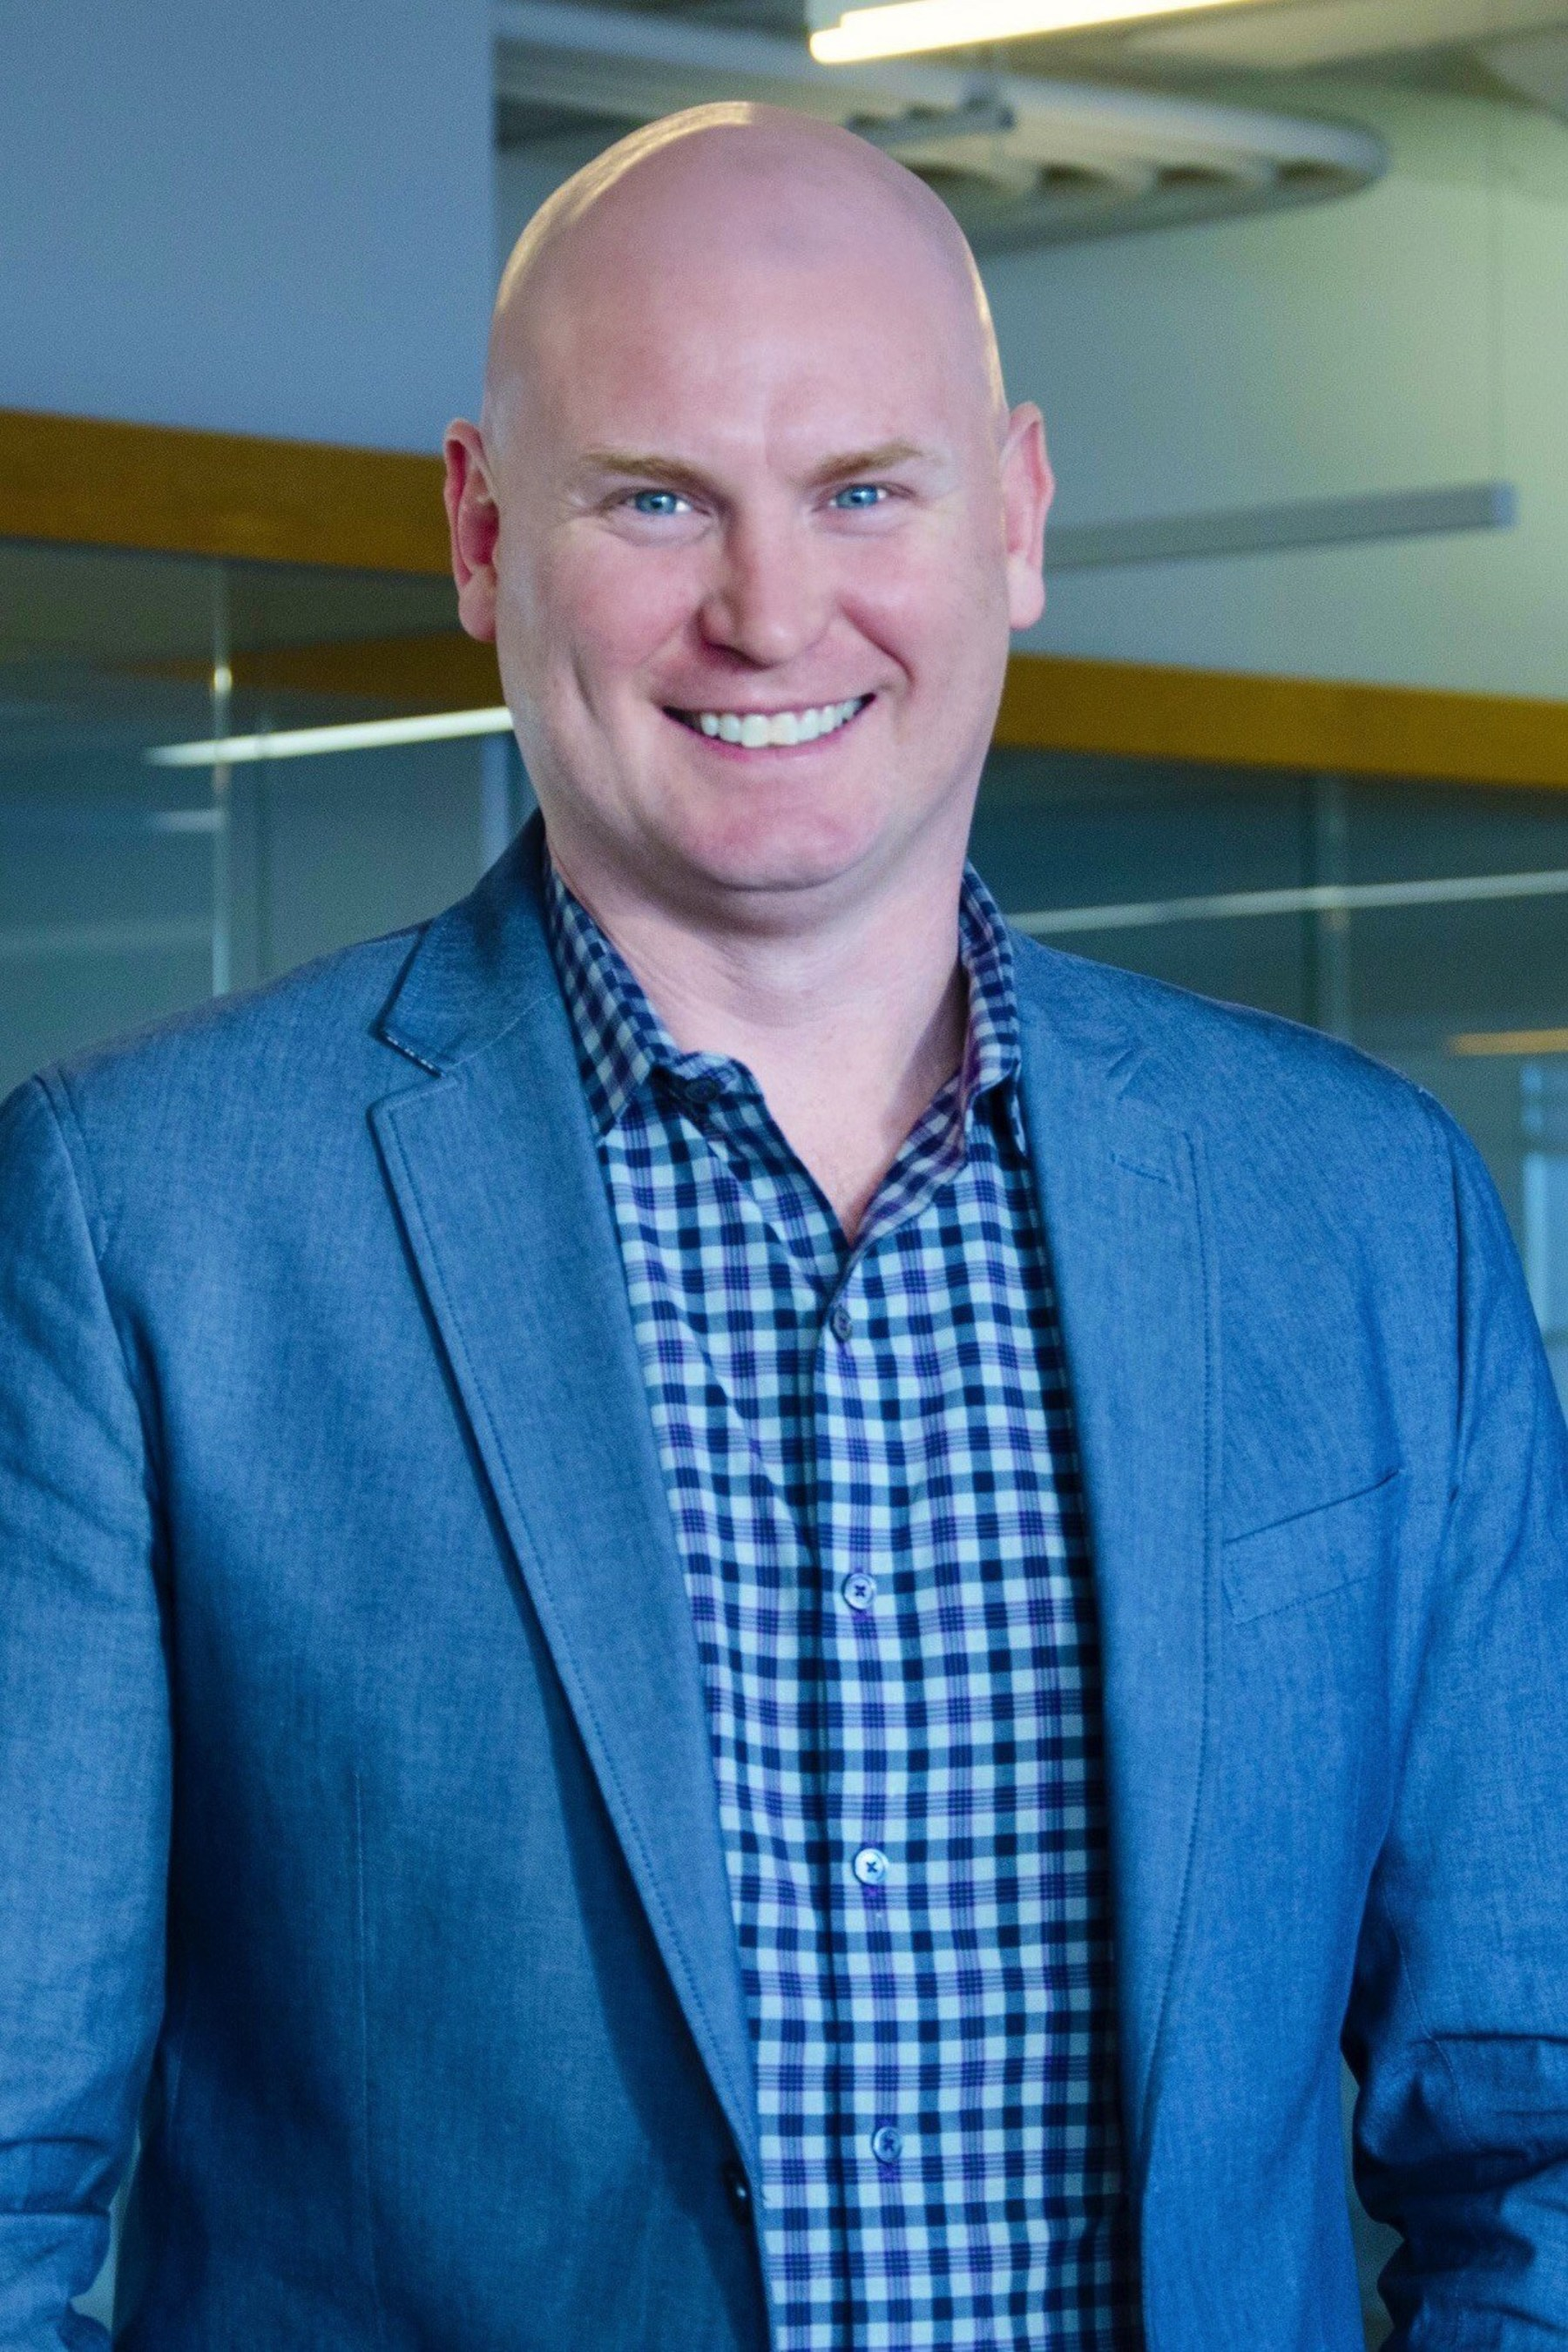 Horizon Media Appoints Larry Curran as Vice President of Talent Acquisition